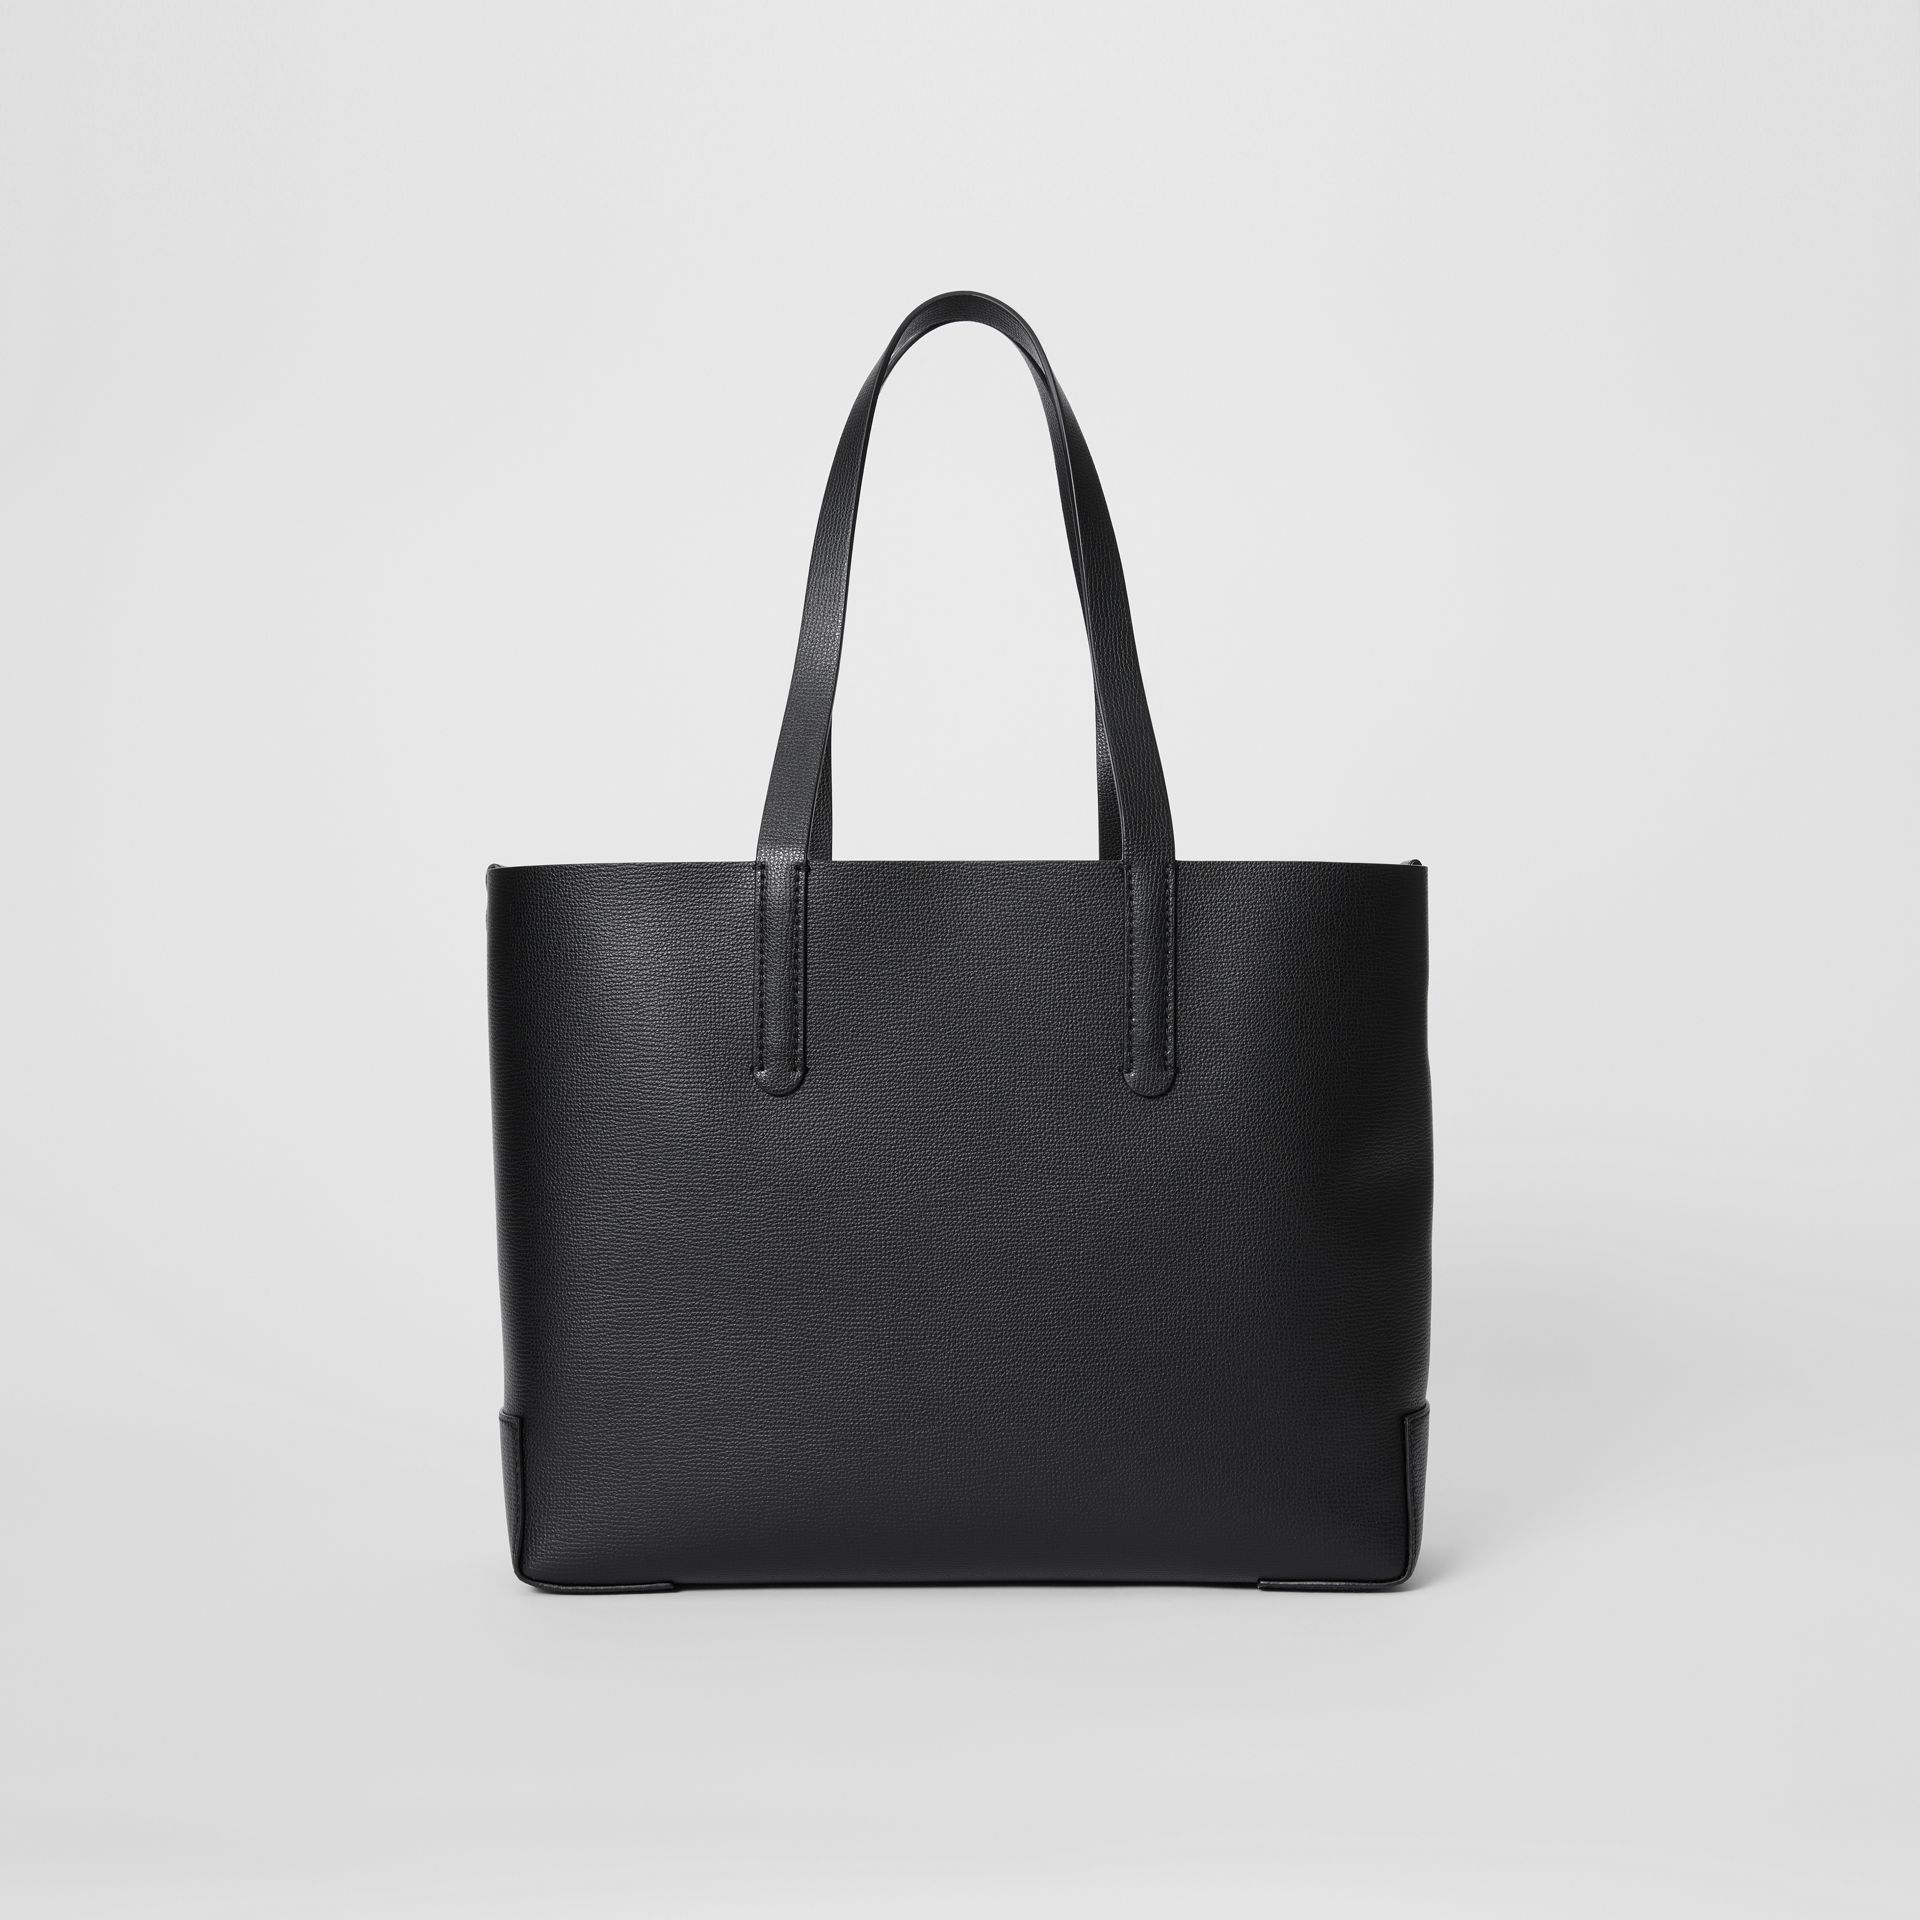 Embossed Monogram Motif Leather Tote in Black - Women | Burberry - gallery image 7